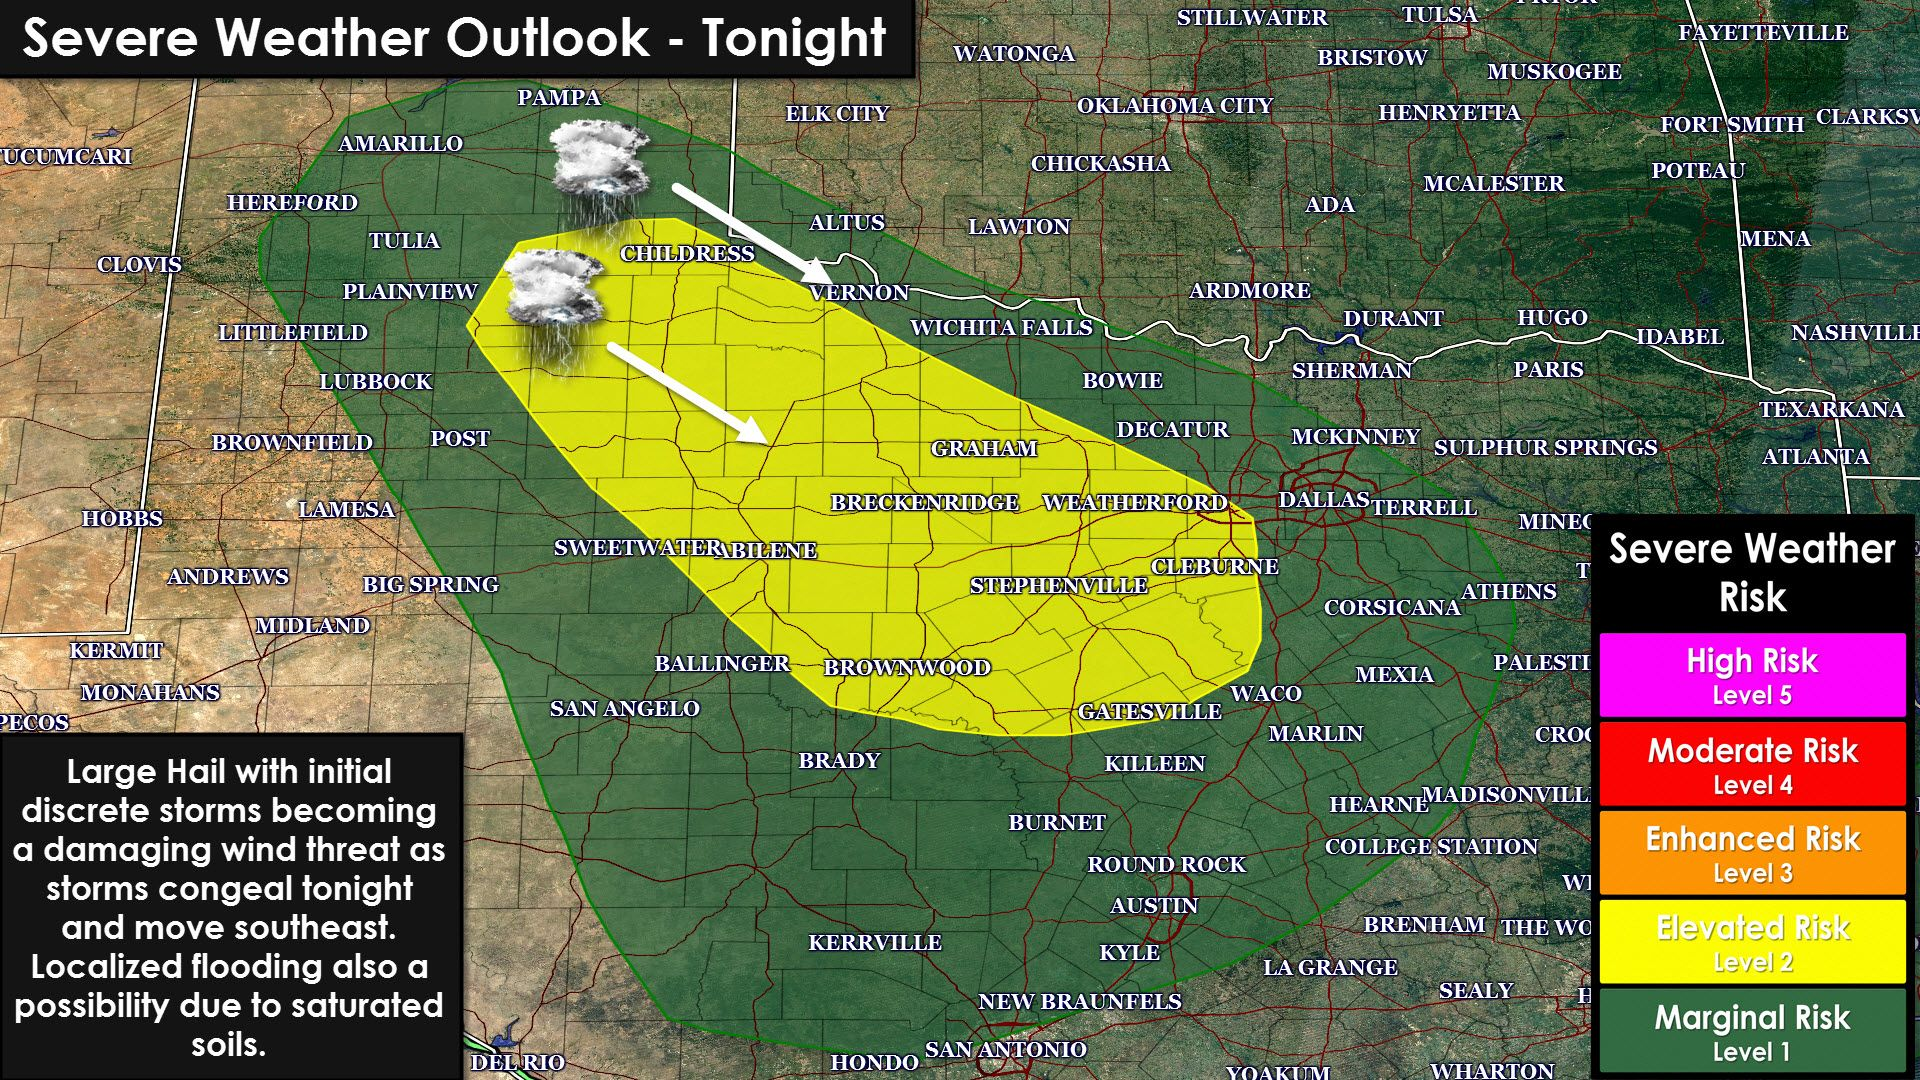 Another Cluster Of Storms Expected Tonight Some Severe Once Again Texas Storm Chasers Texas Storm Storm Prediction Center Storm